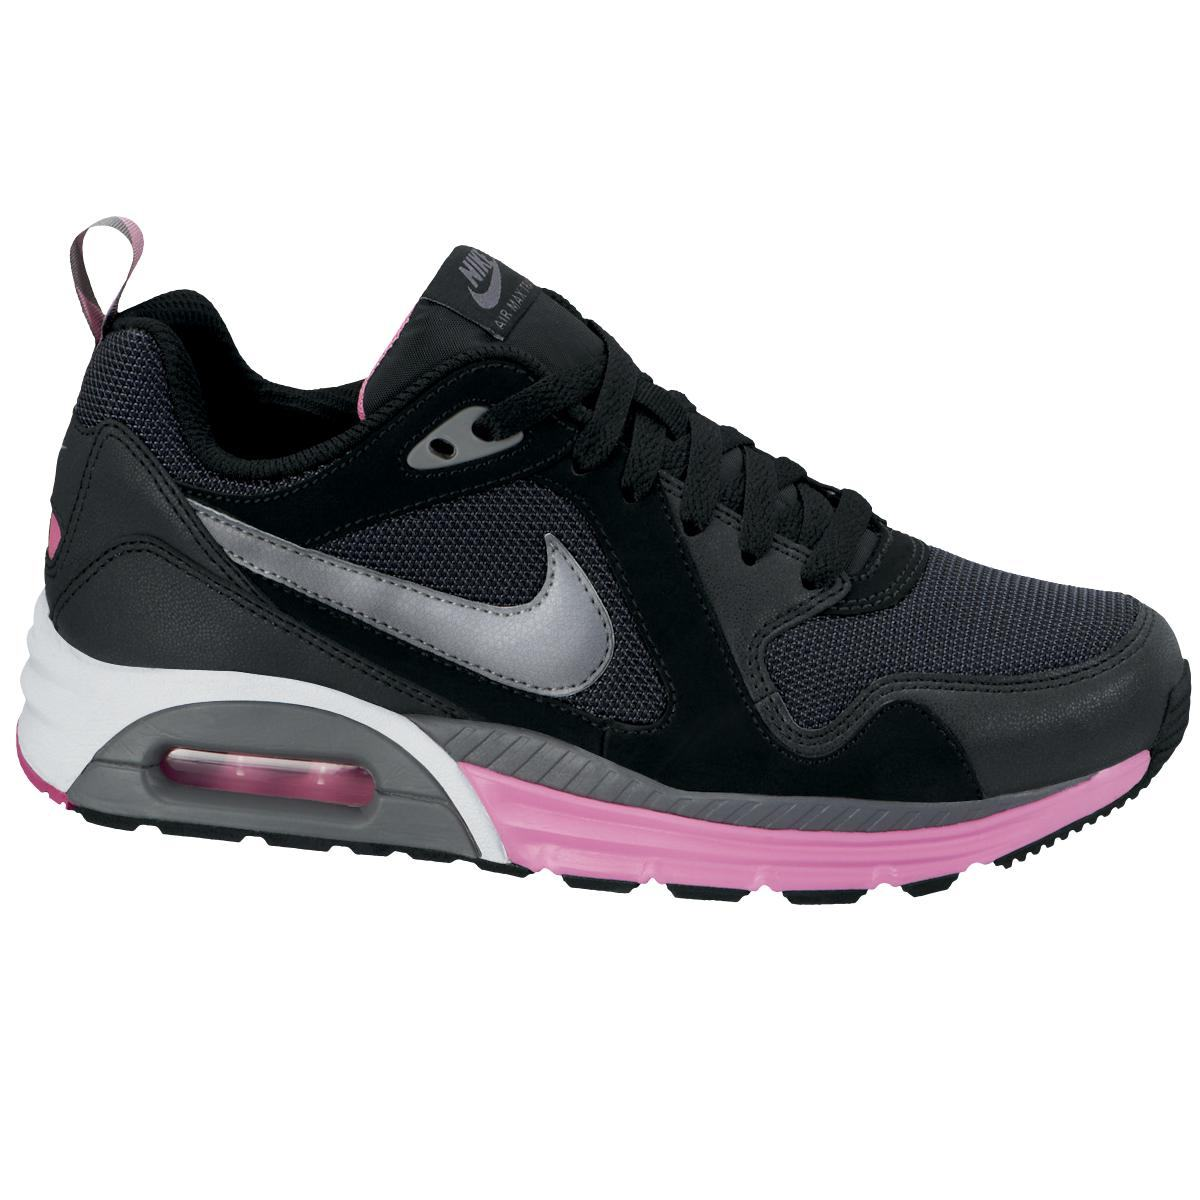 nike air max trax damen schuhe turnschuhe sneakers. Black Bedroom Furniture Sets. Home Design Ideas